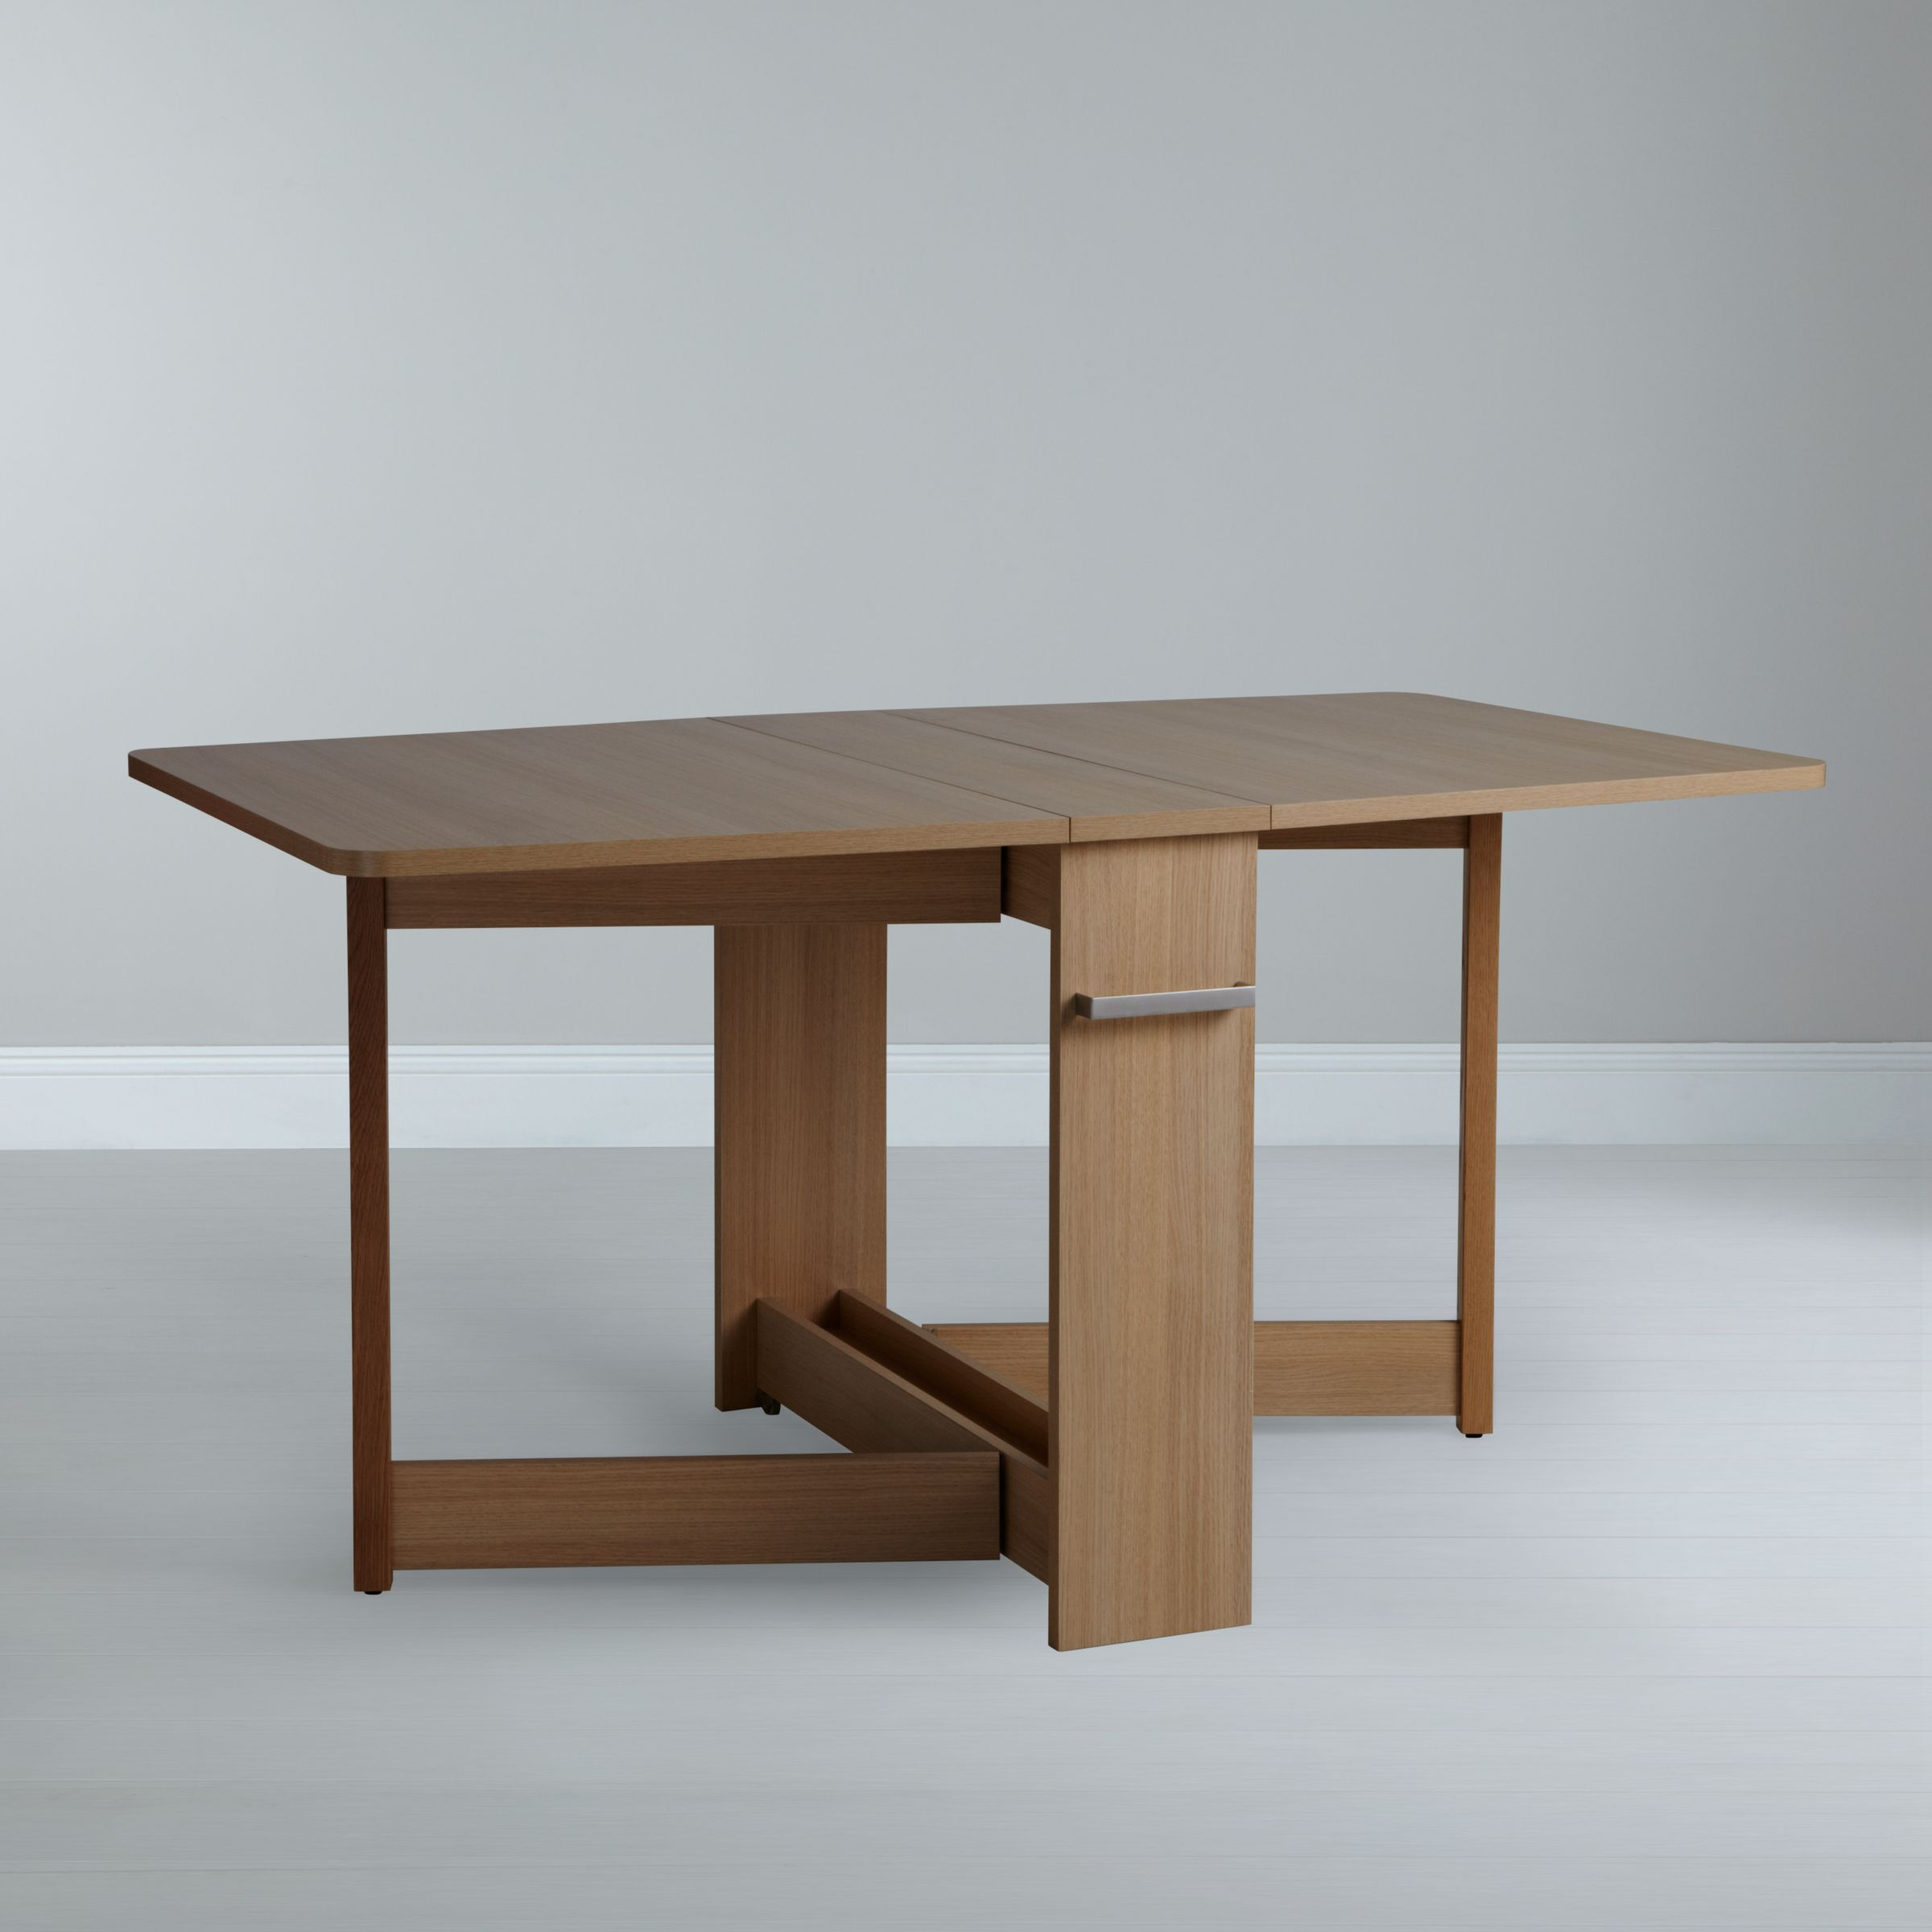 pfeifer for john lewis croyde 6 seater drop leaf folding dining table